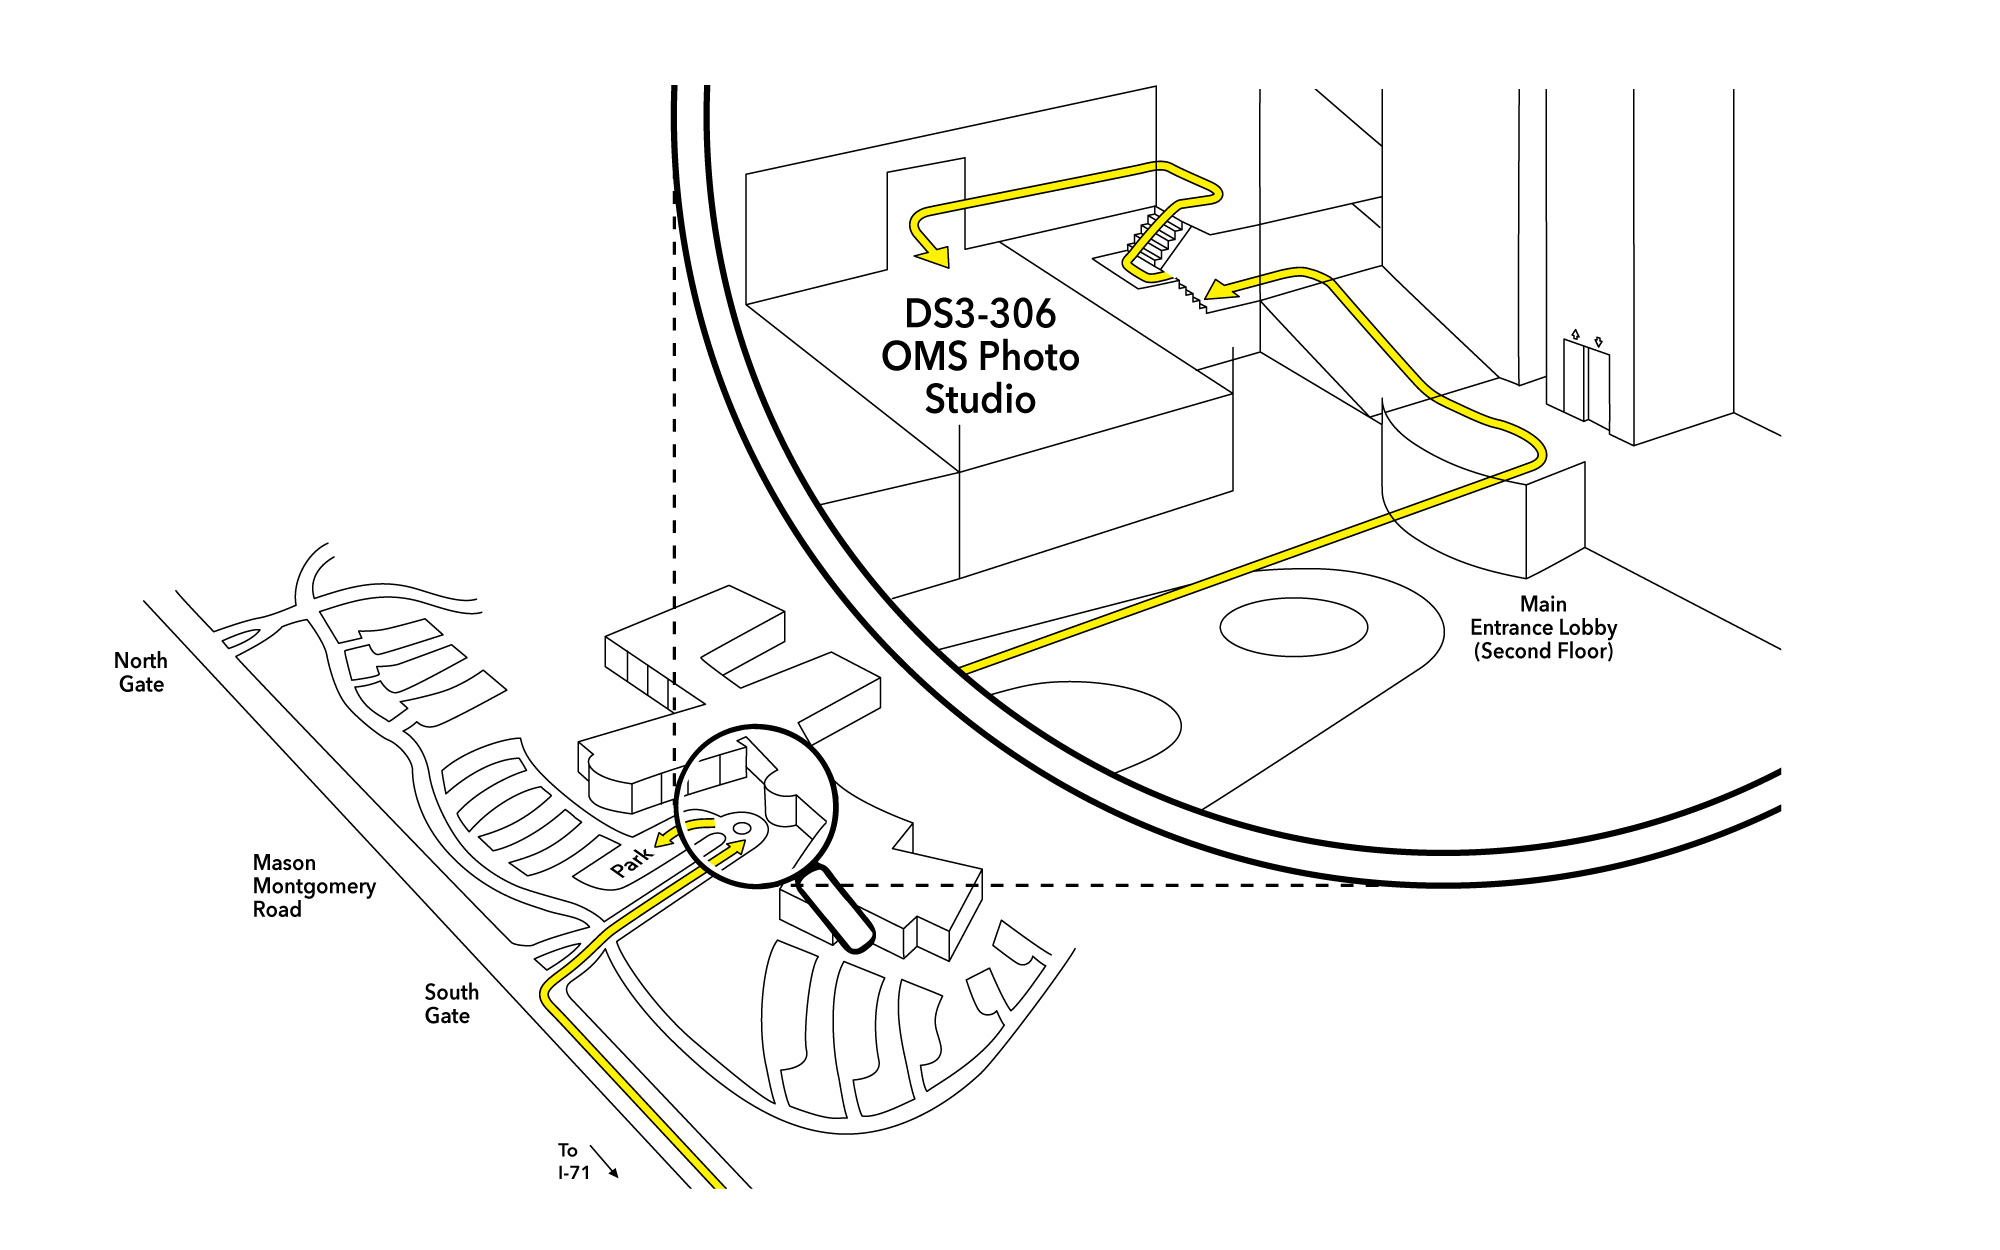 Map to MBC Photo Studio